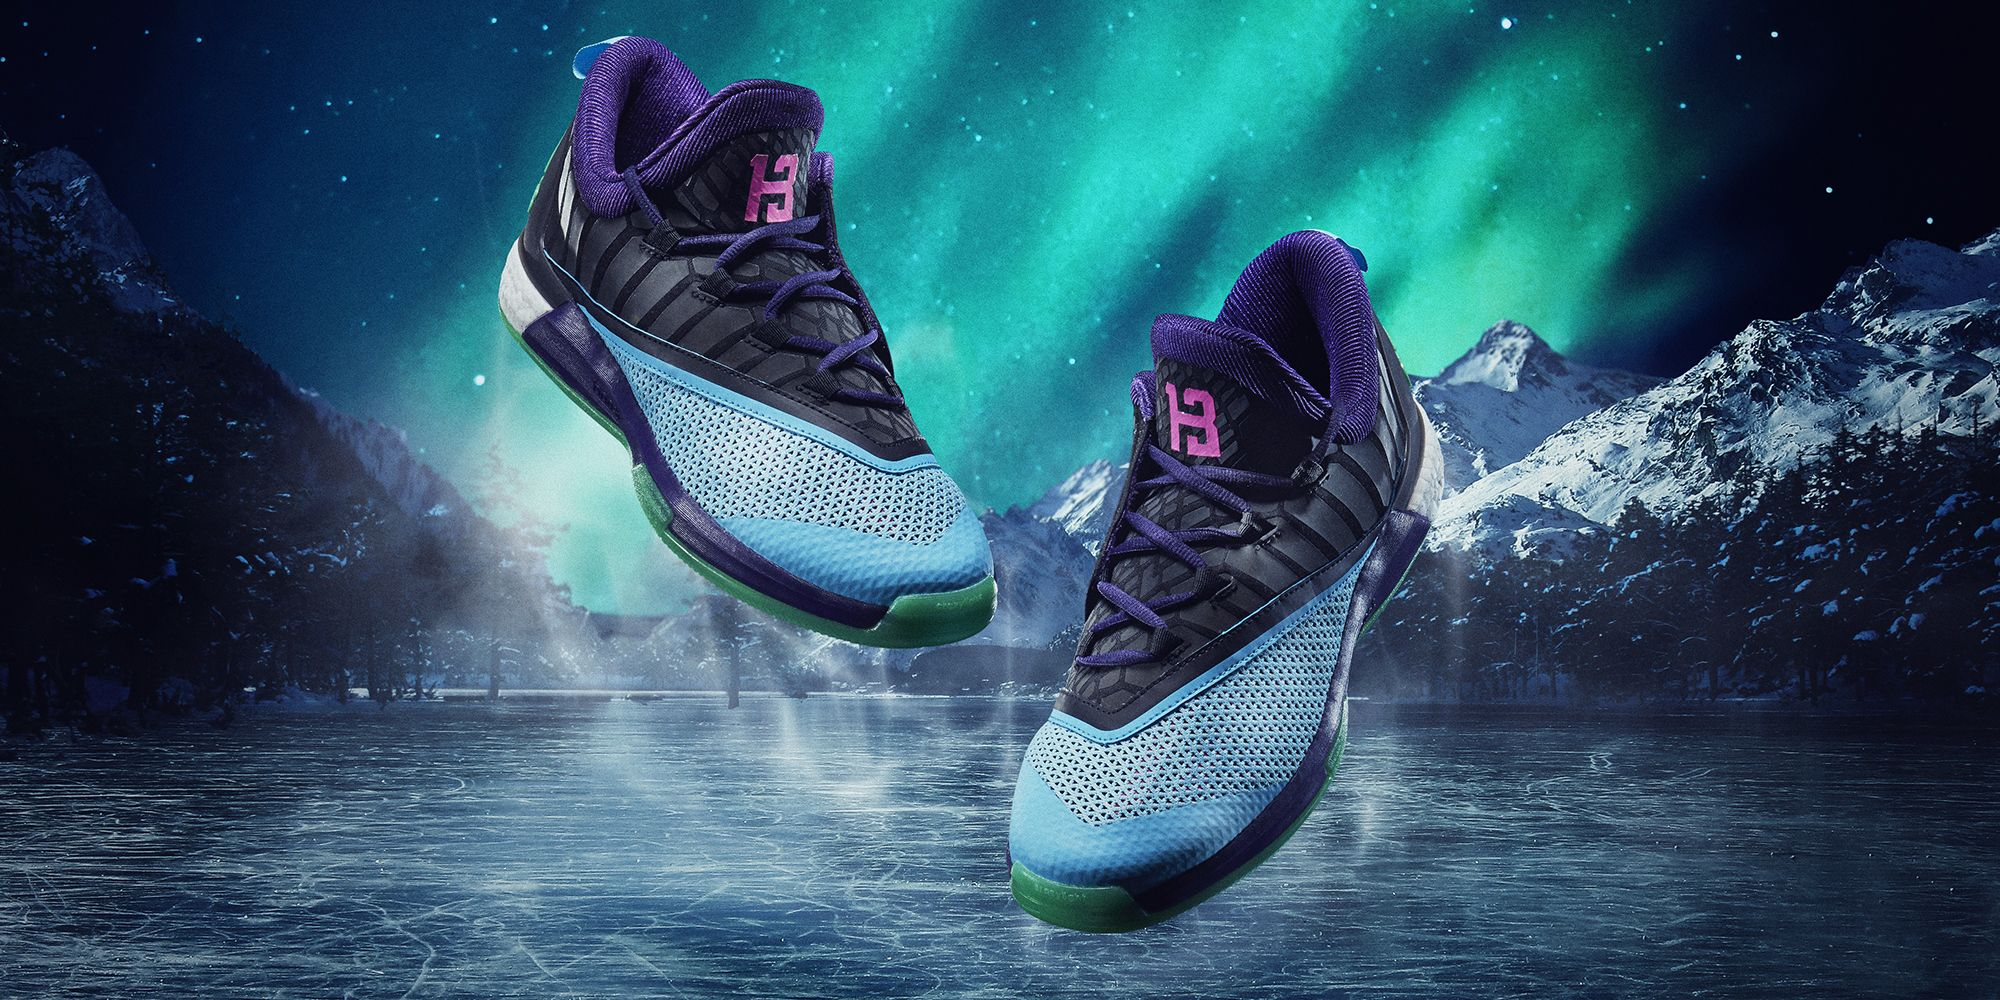 competitive price c8b0e ef96d ... spain adidas unveils james harden crazylight boost 2.5 pe for the nba  all star game 9a951